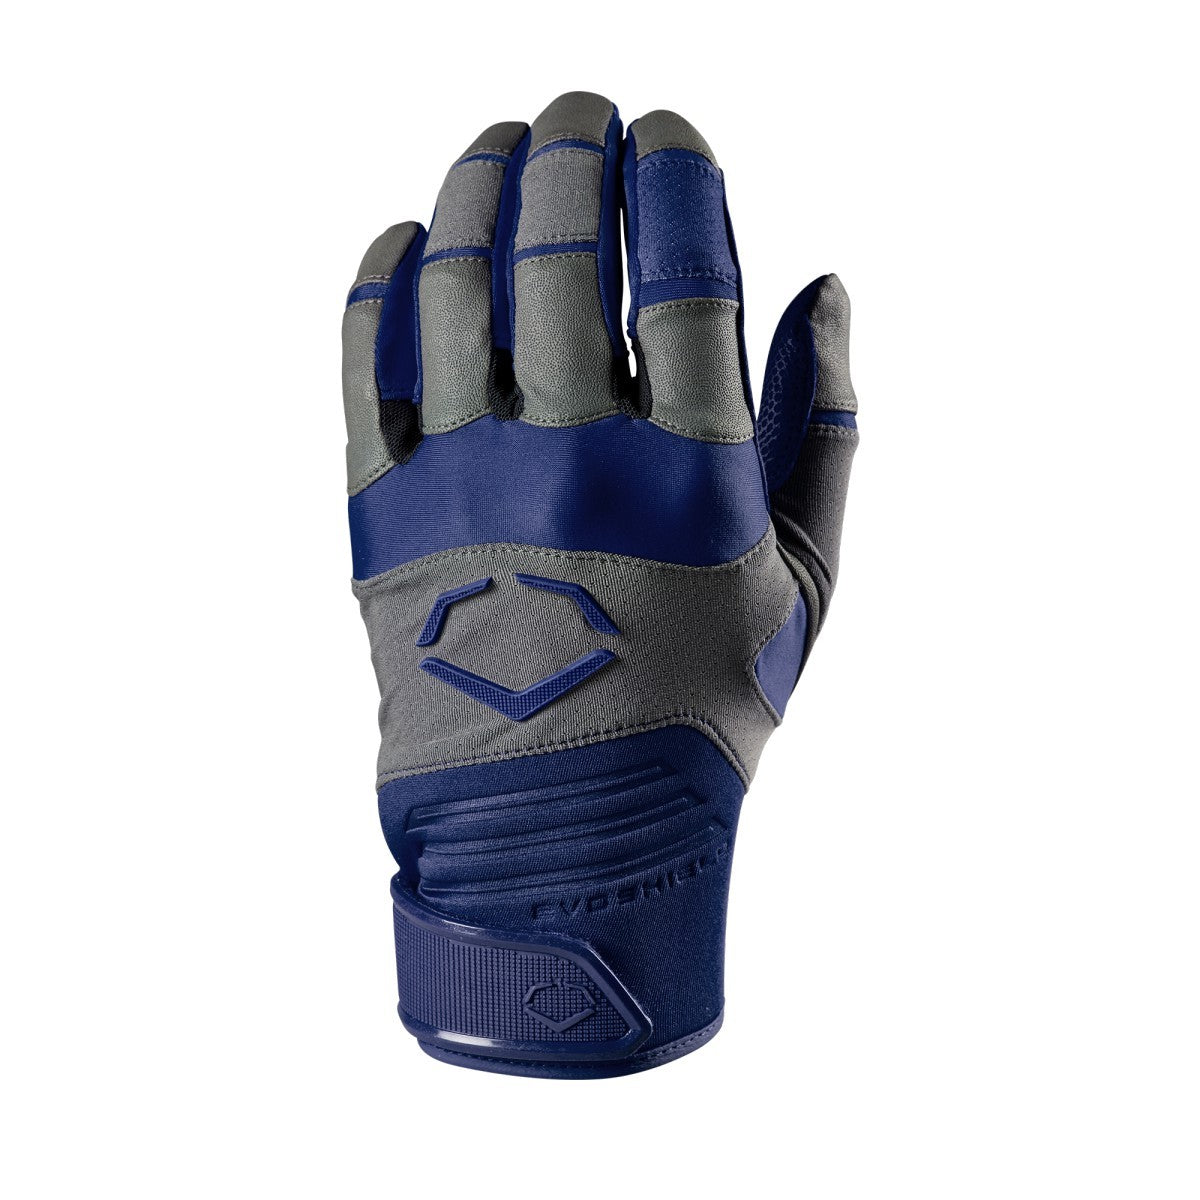 Evoshield Aggressor Batting Gloves